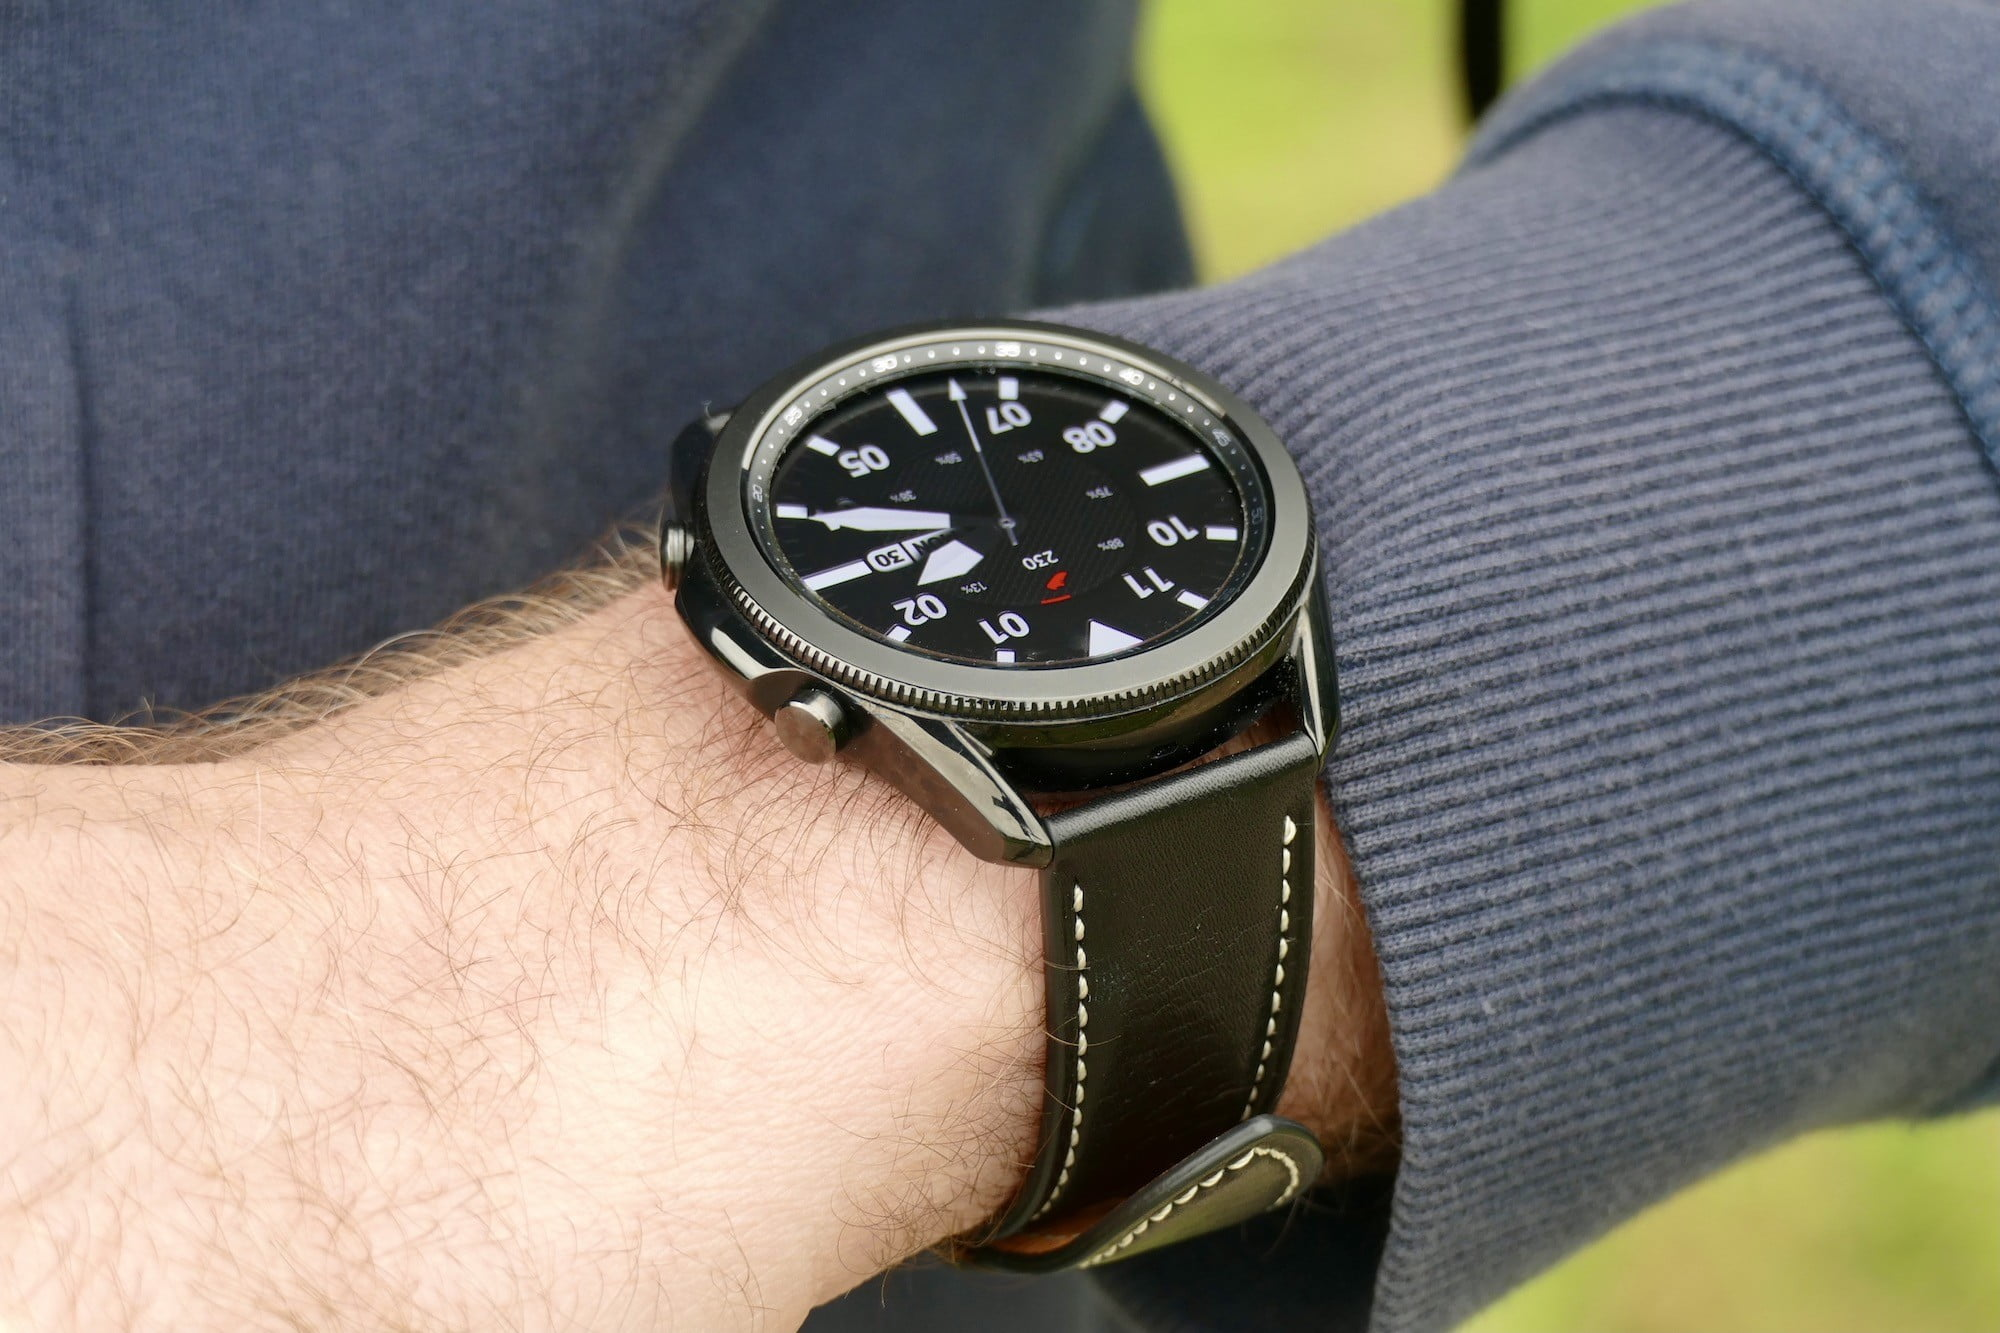 Galaxy Watch 3 on the wrist, seen from the side.